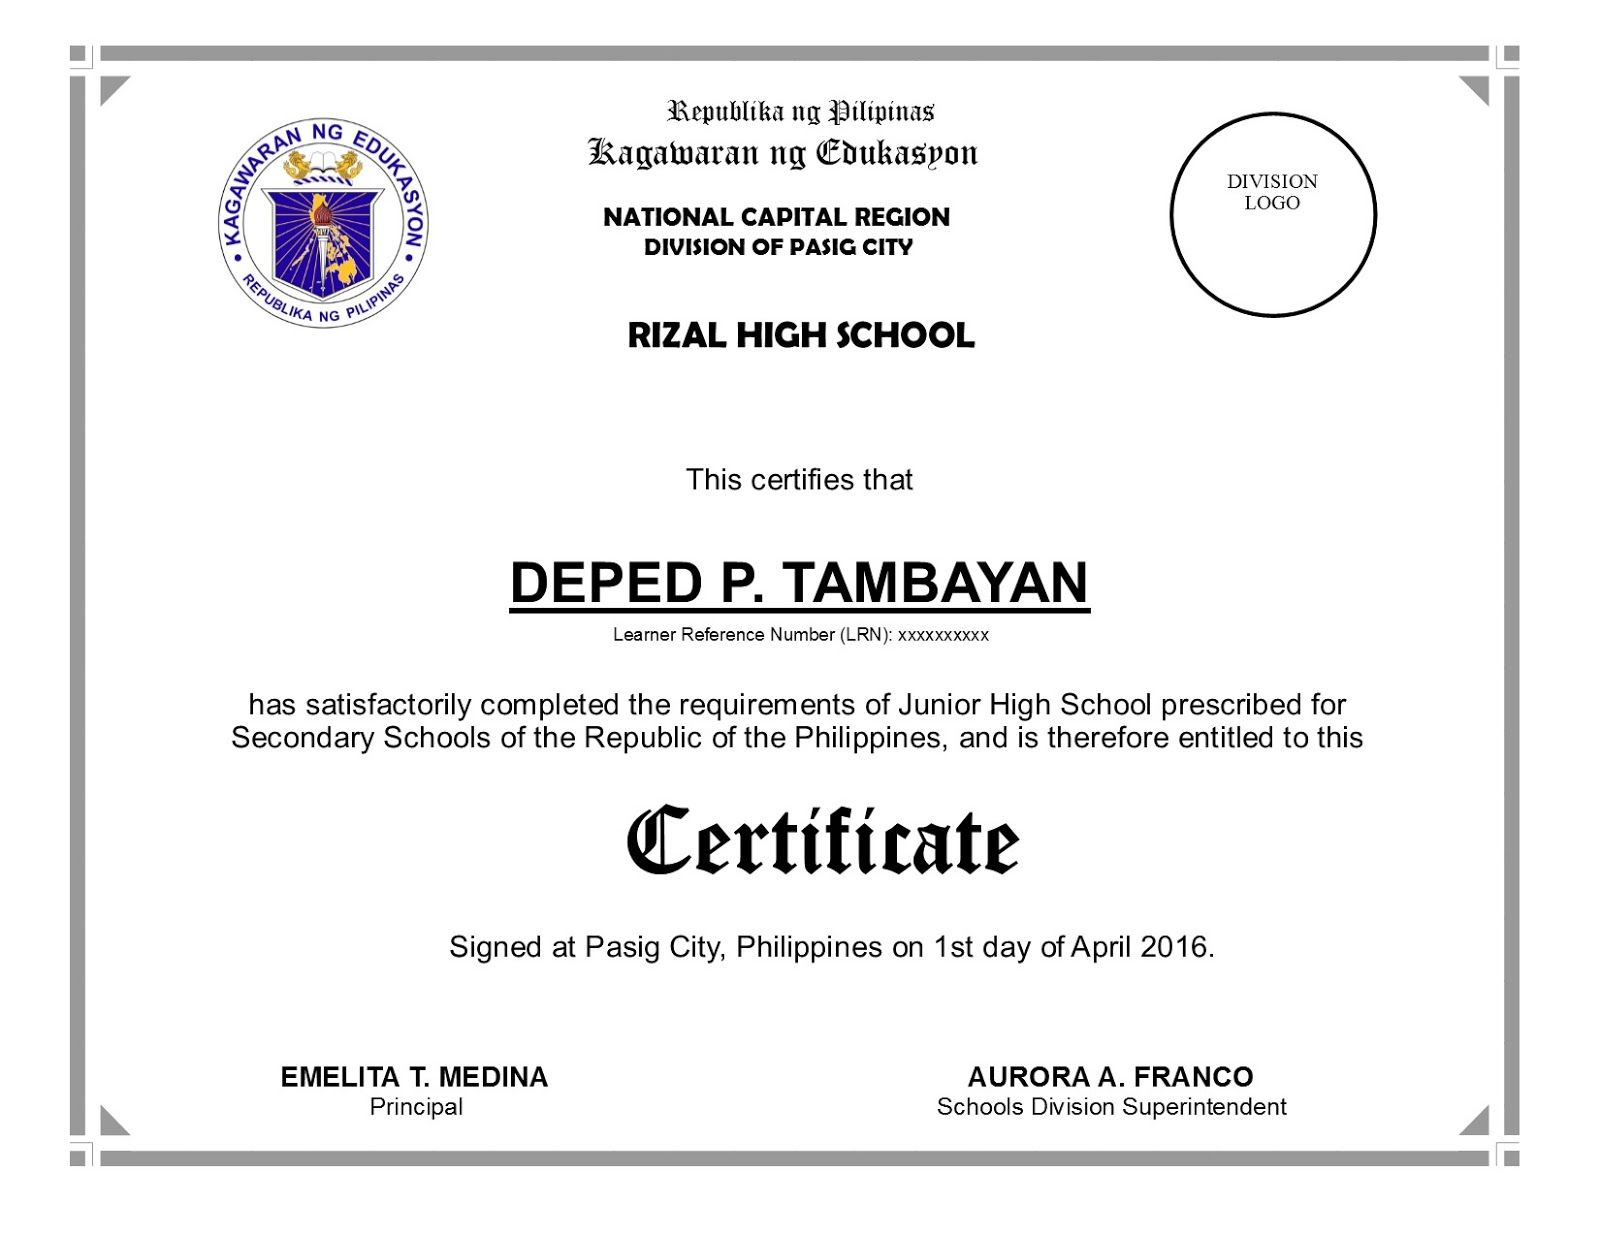 Deped diploma sample wordings yahoo image search results school deped diploma sample wordings yahoo image search results yelopaper Images